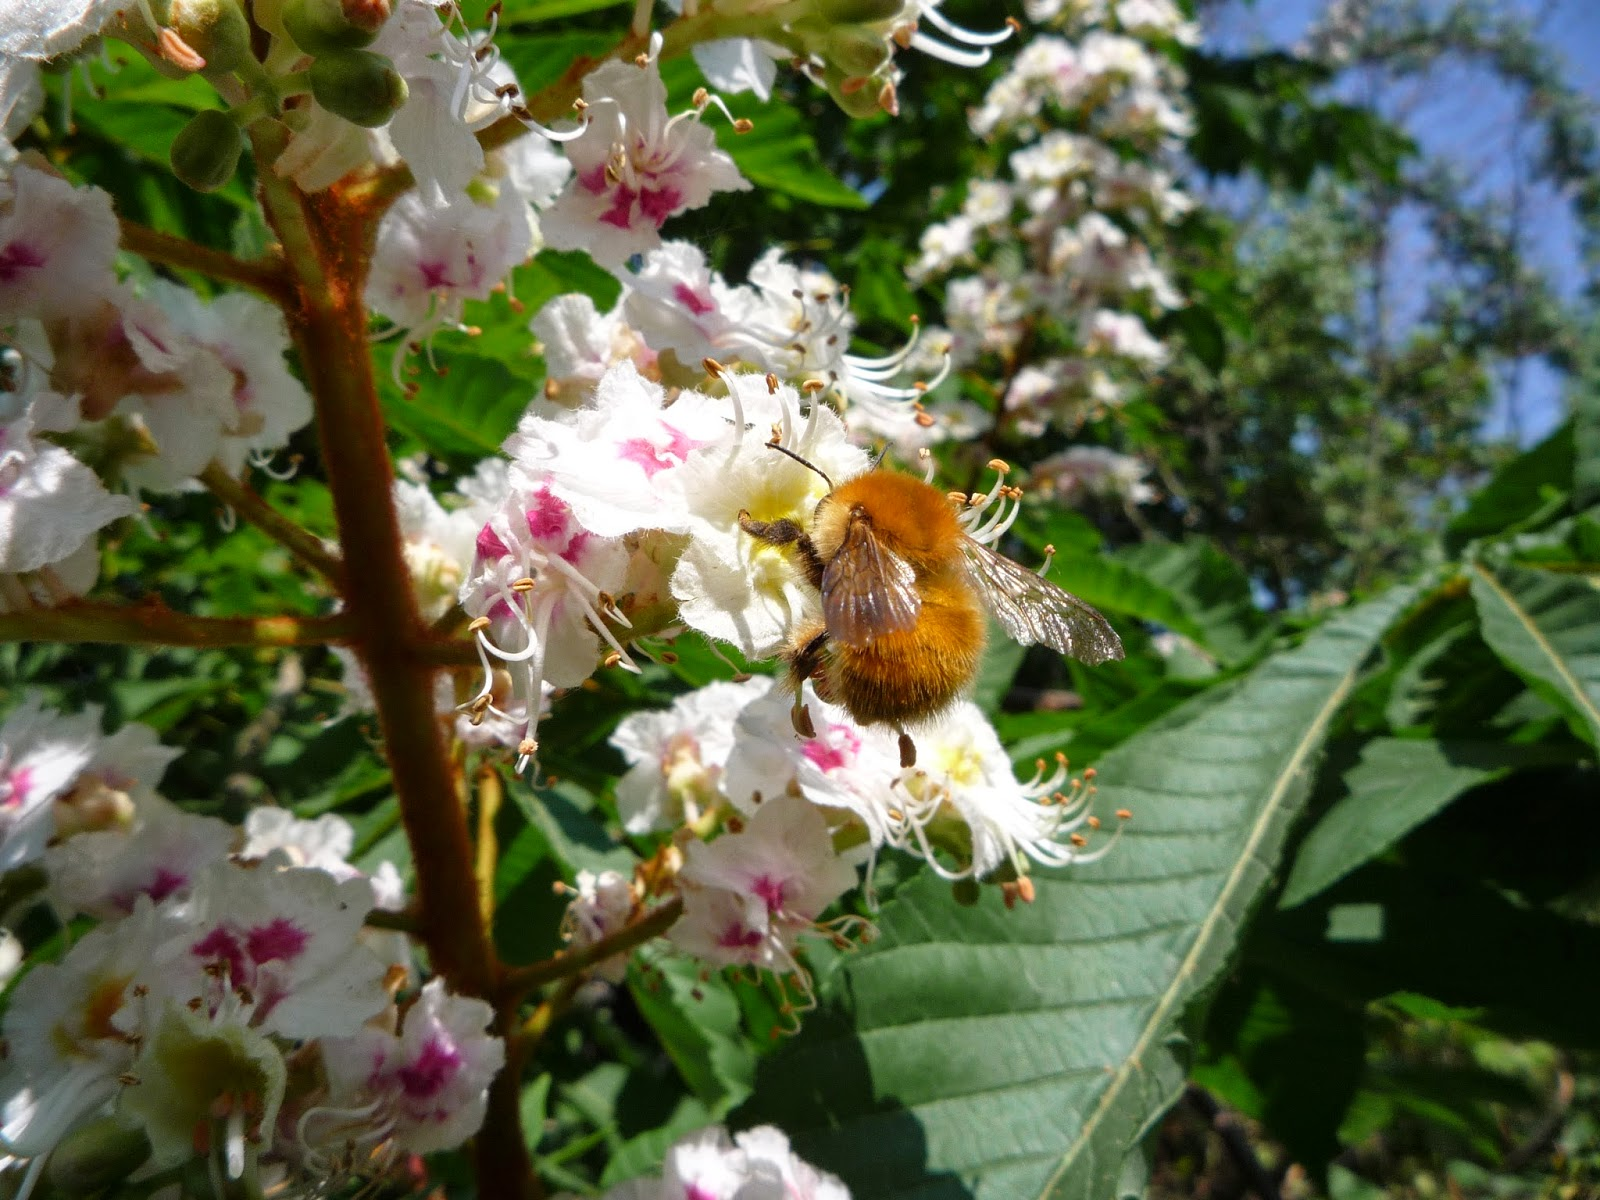 Bumble bee and horse chestnut flower